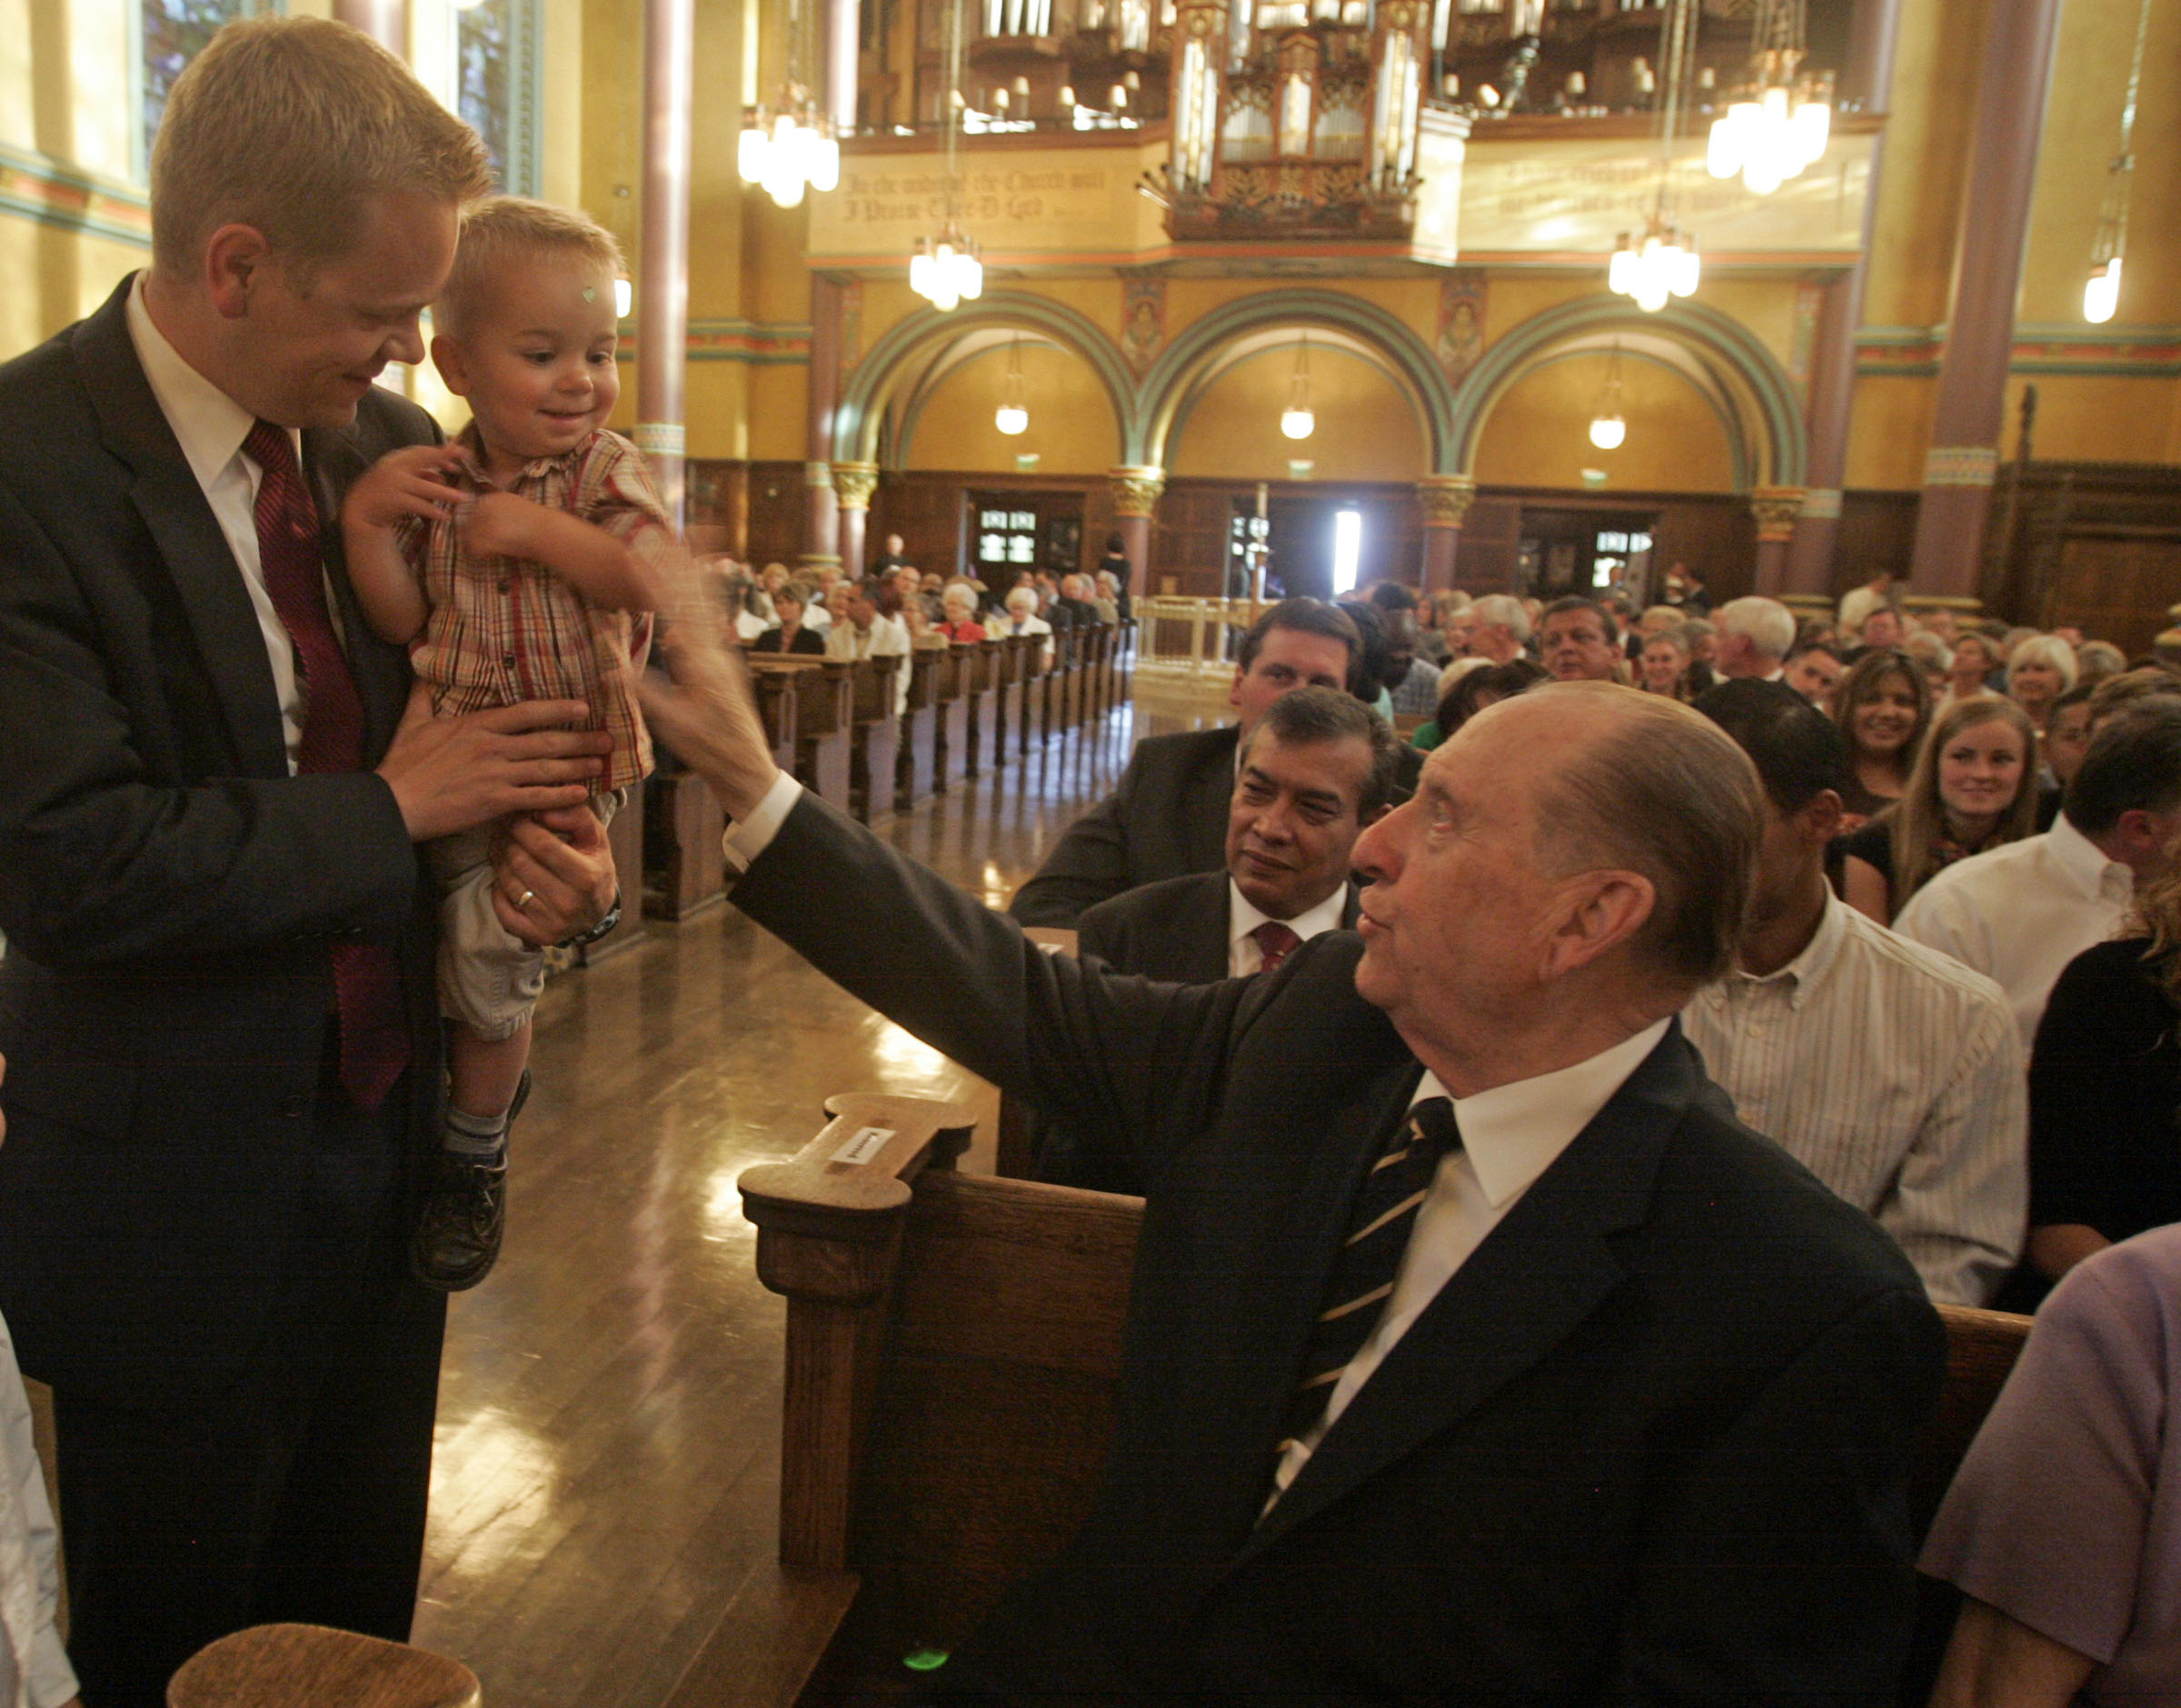 (Tribune file photo) President Thomas S. Monson visits with Scott Daw of Herriman and Daw's 1-year-old son, Brennan Daw during an event at the Cathedral of the Madeleine in August 2012.